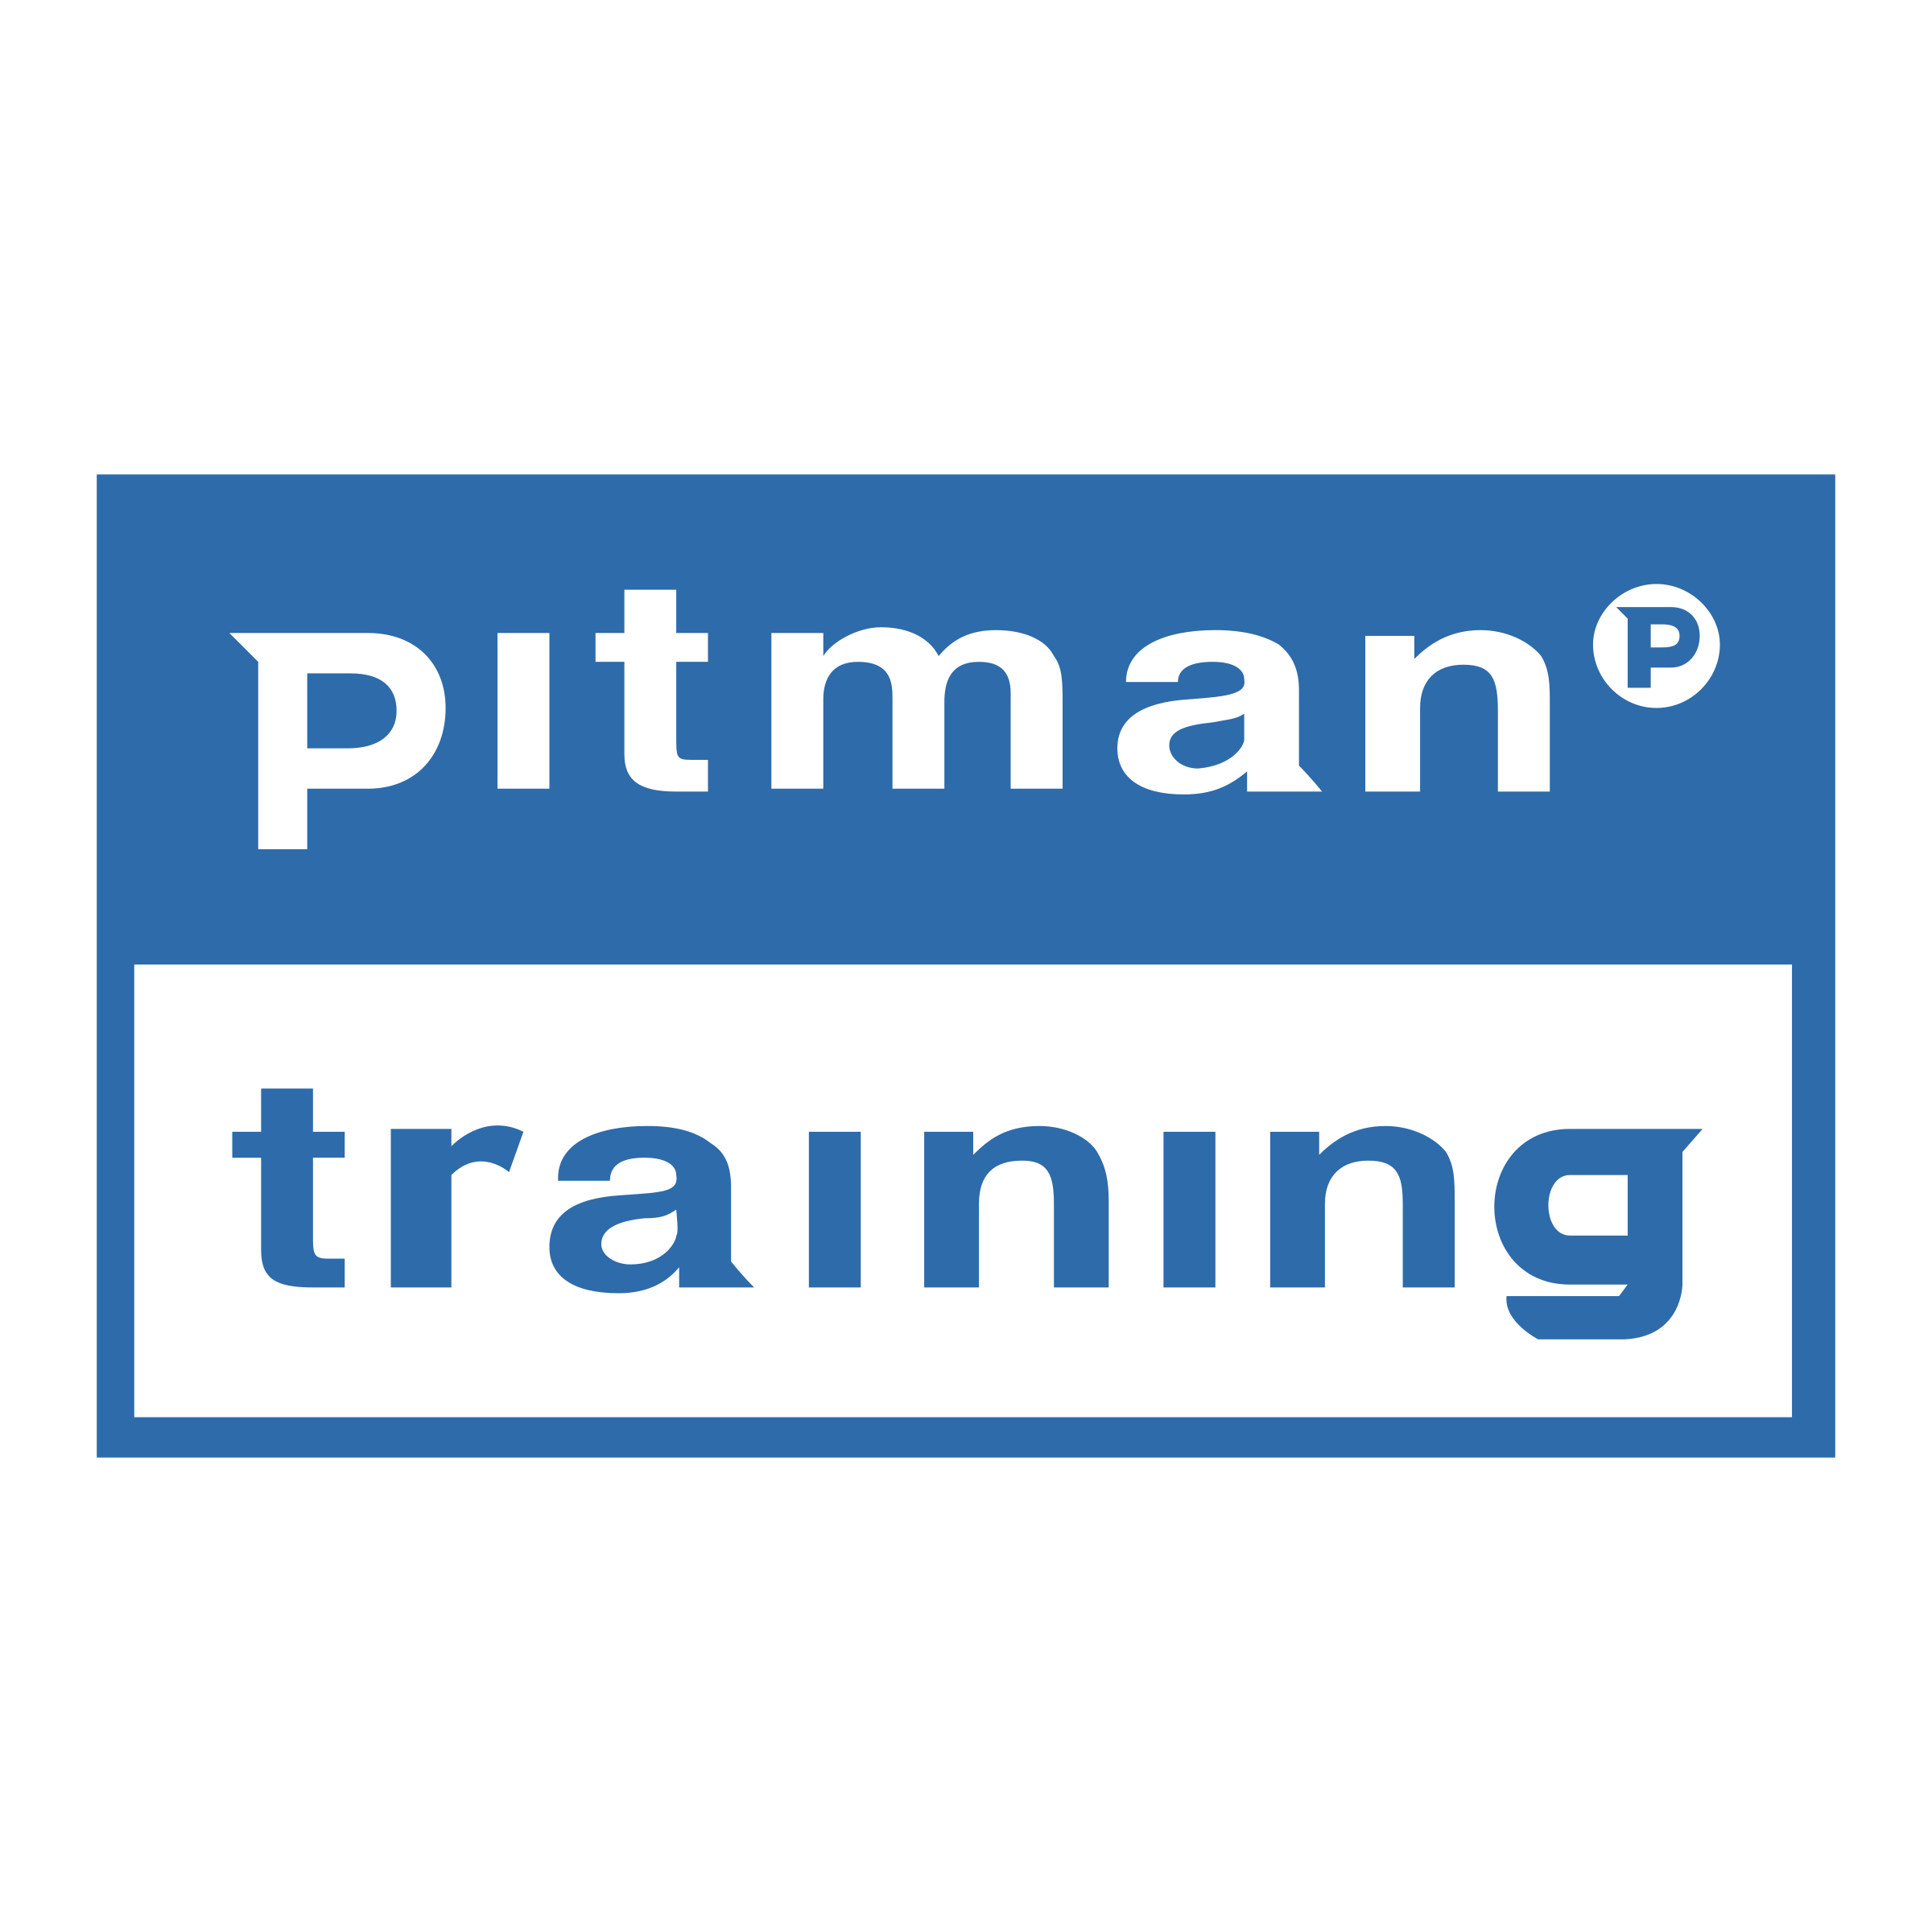 pitman-training-logo-png-transparent